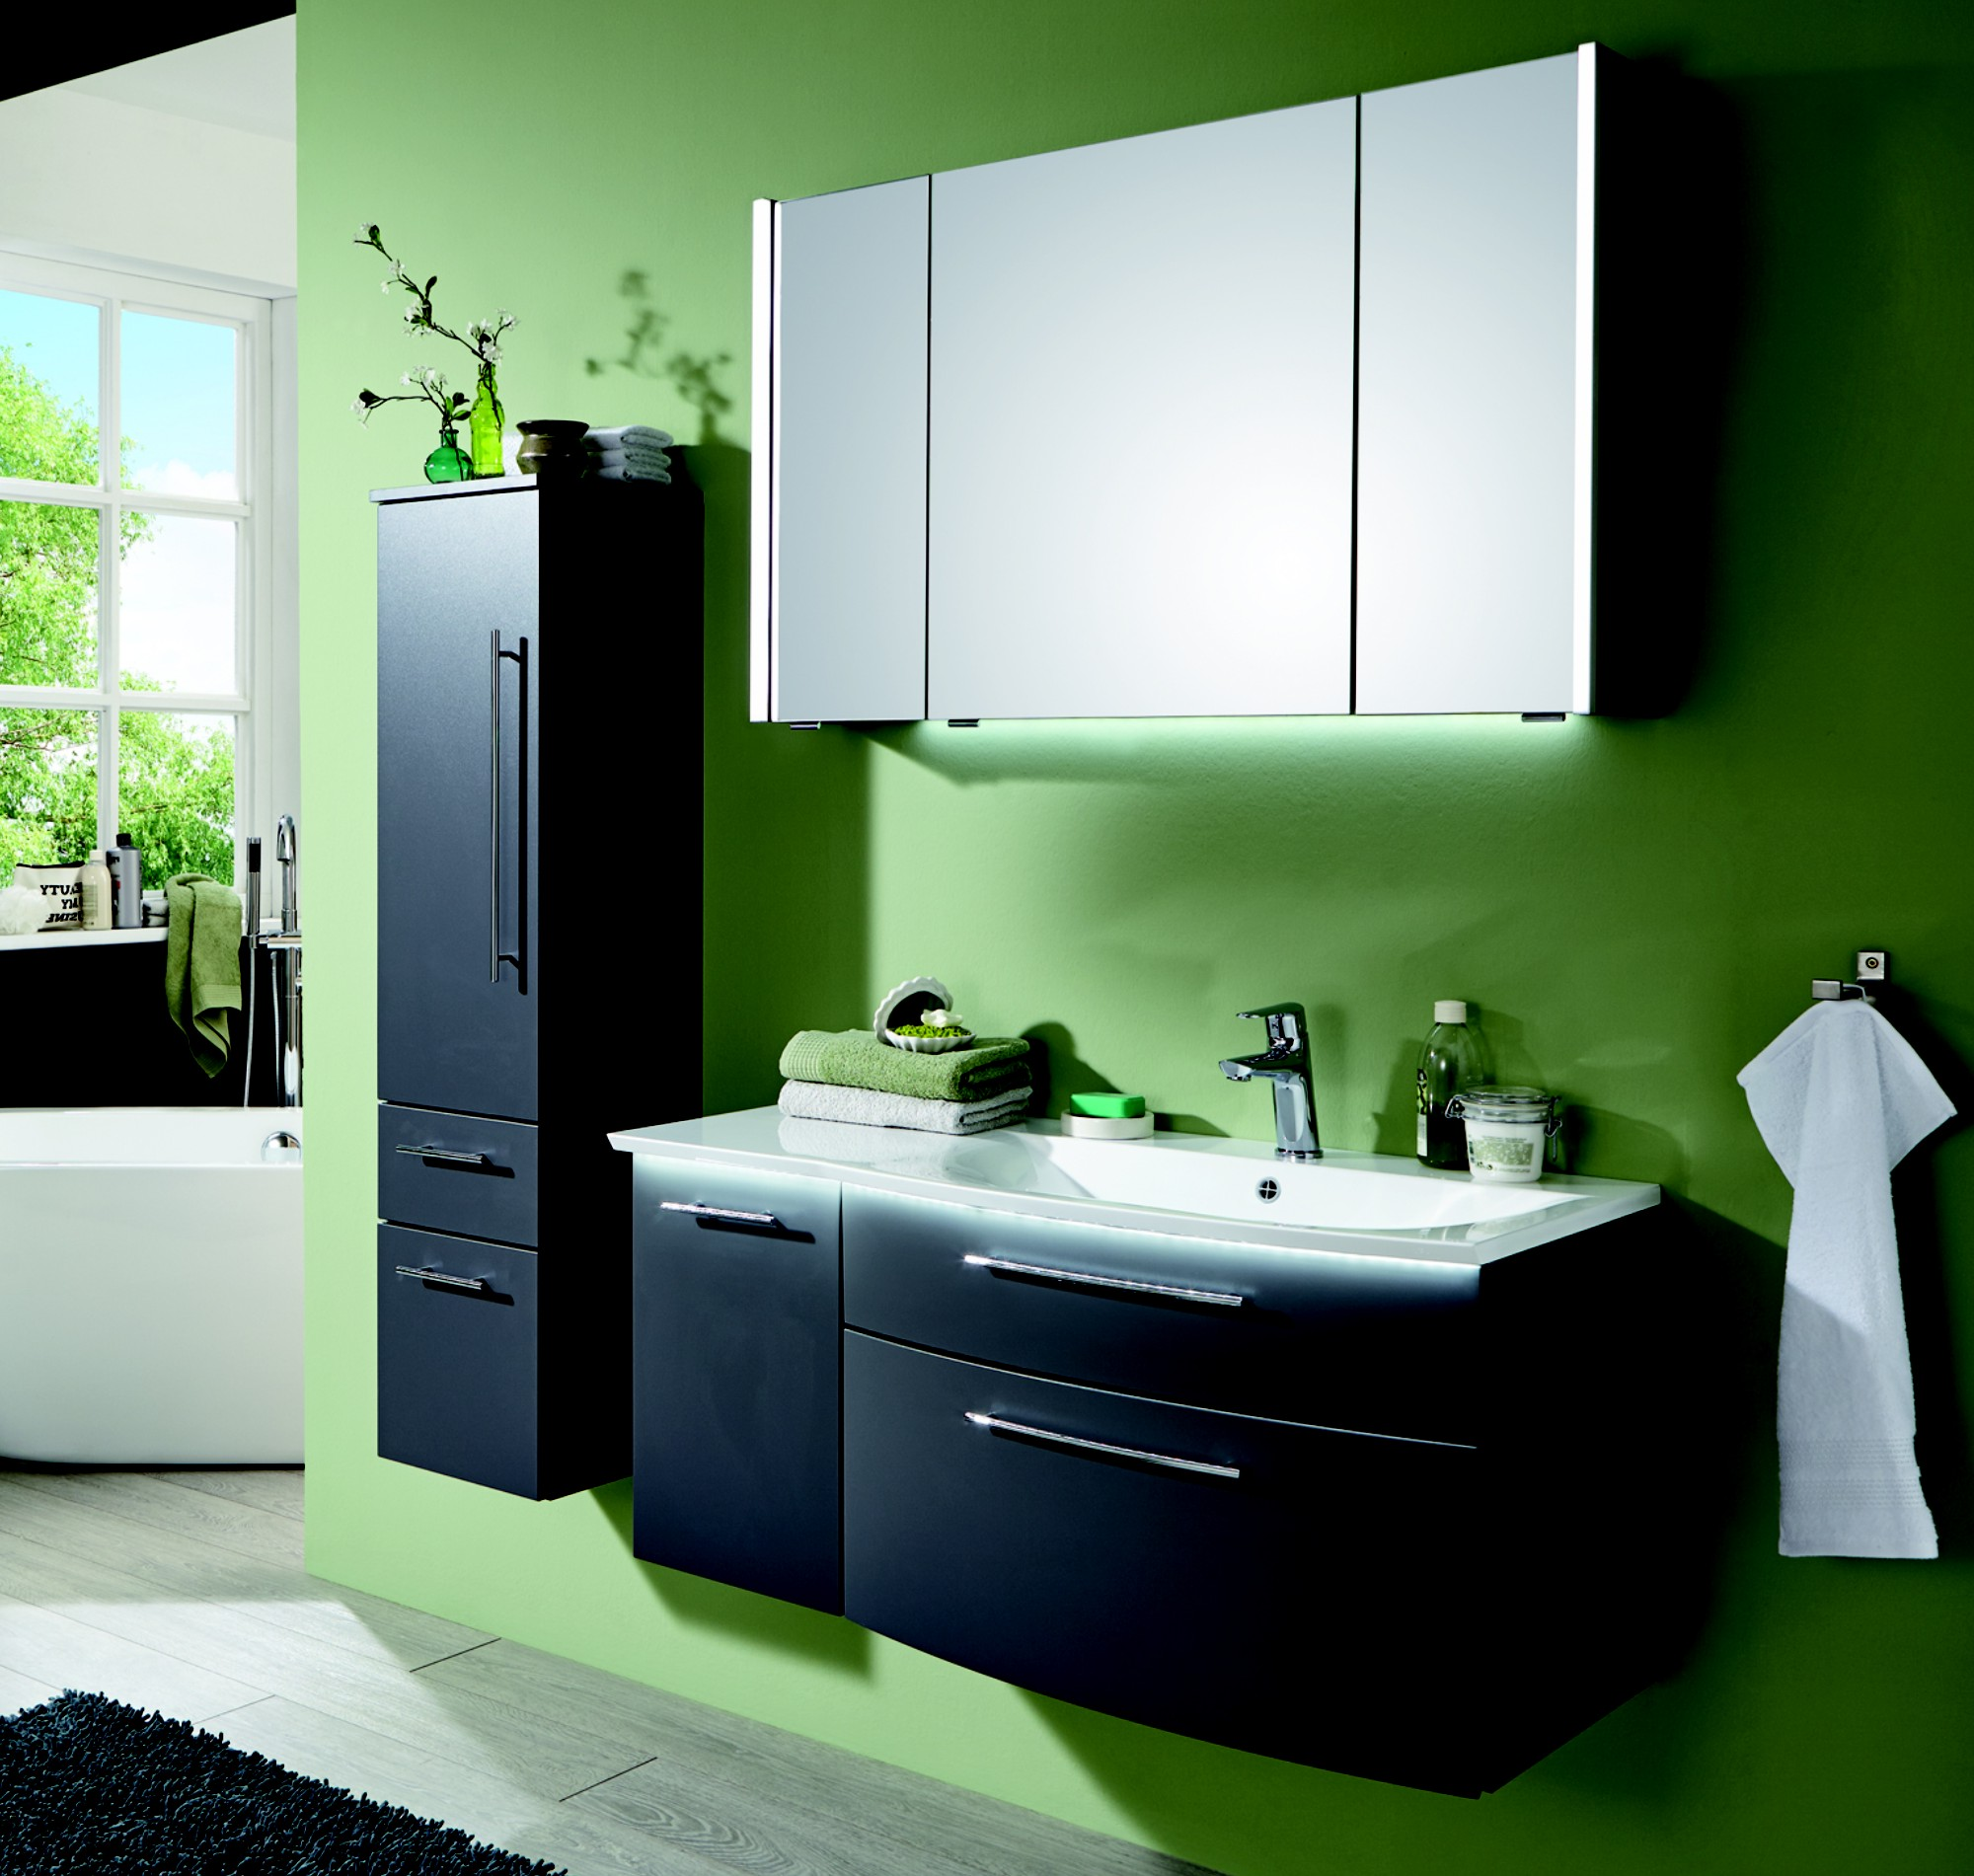 linea unterschrank badschrank g nstig arcom center. Black Bedroom Furniture Sets. Home Design Ideas